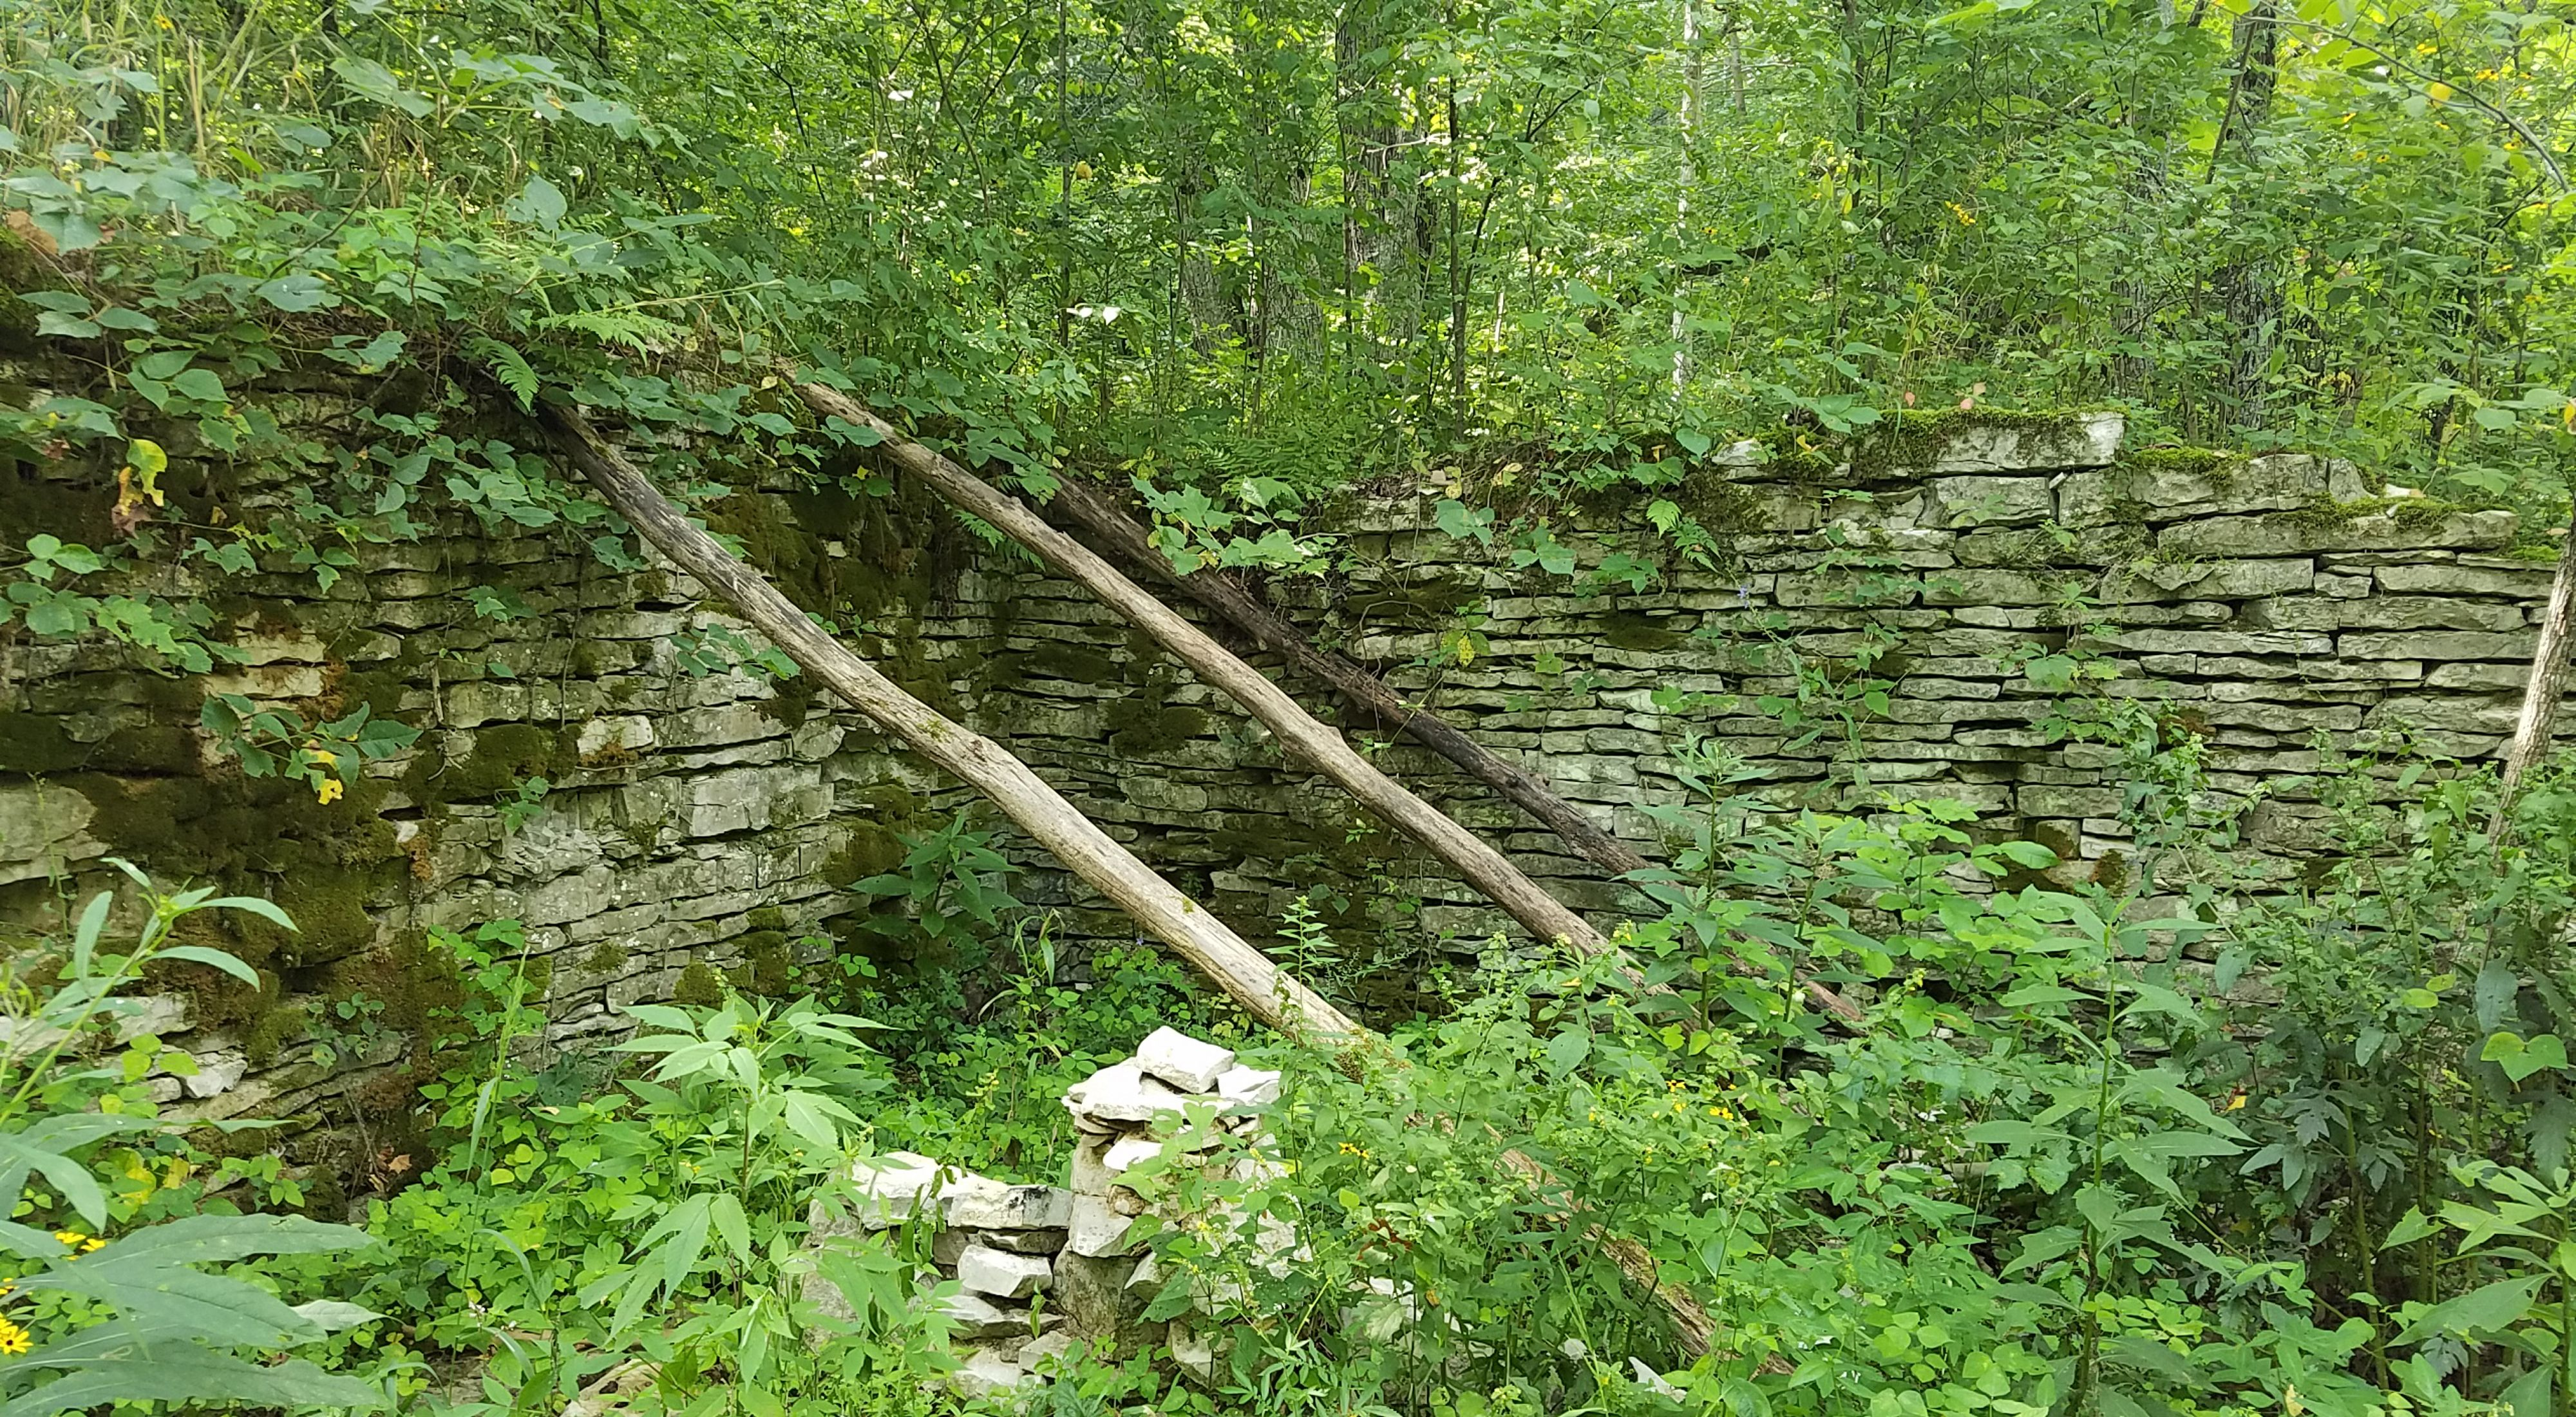 Old stone foundation among a forest of green.